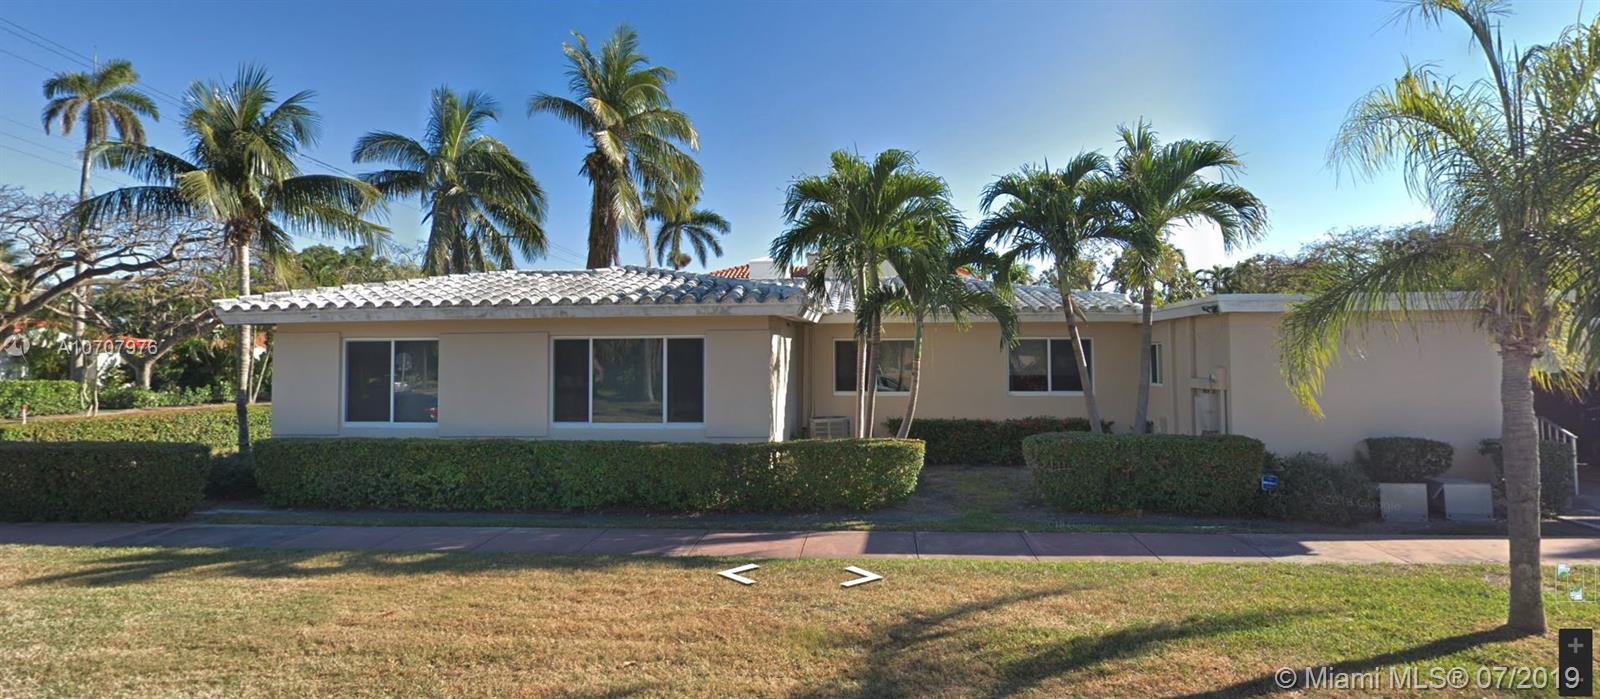 3700  Royal Palm Ave  For Sale A10707976, FL